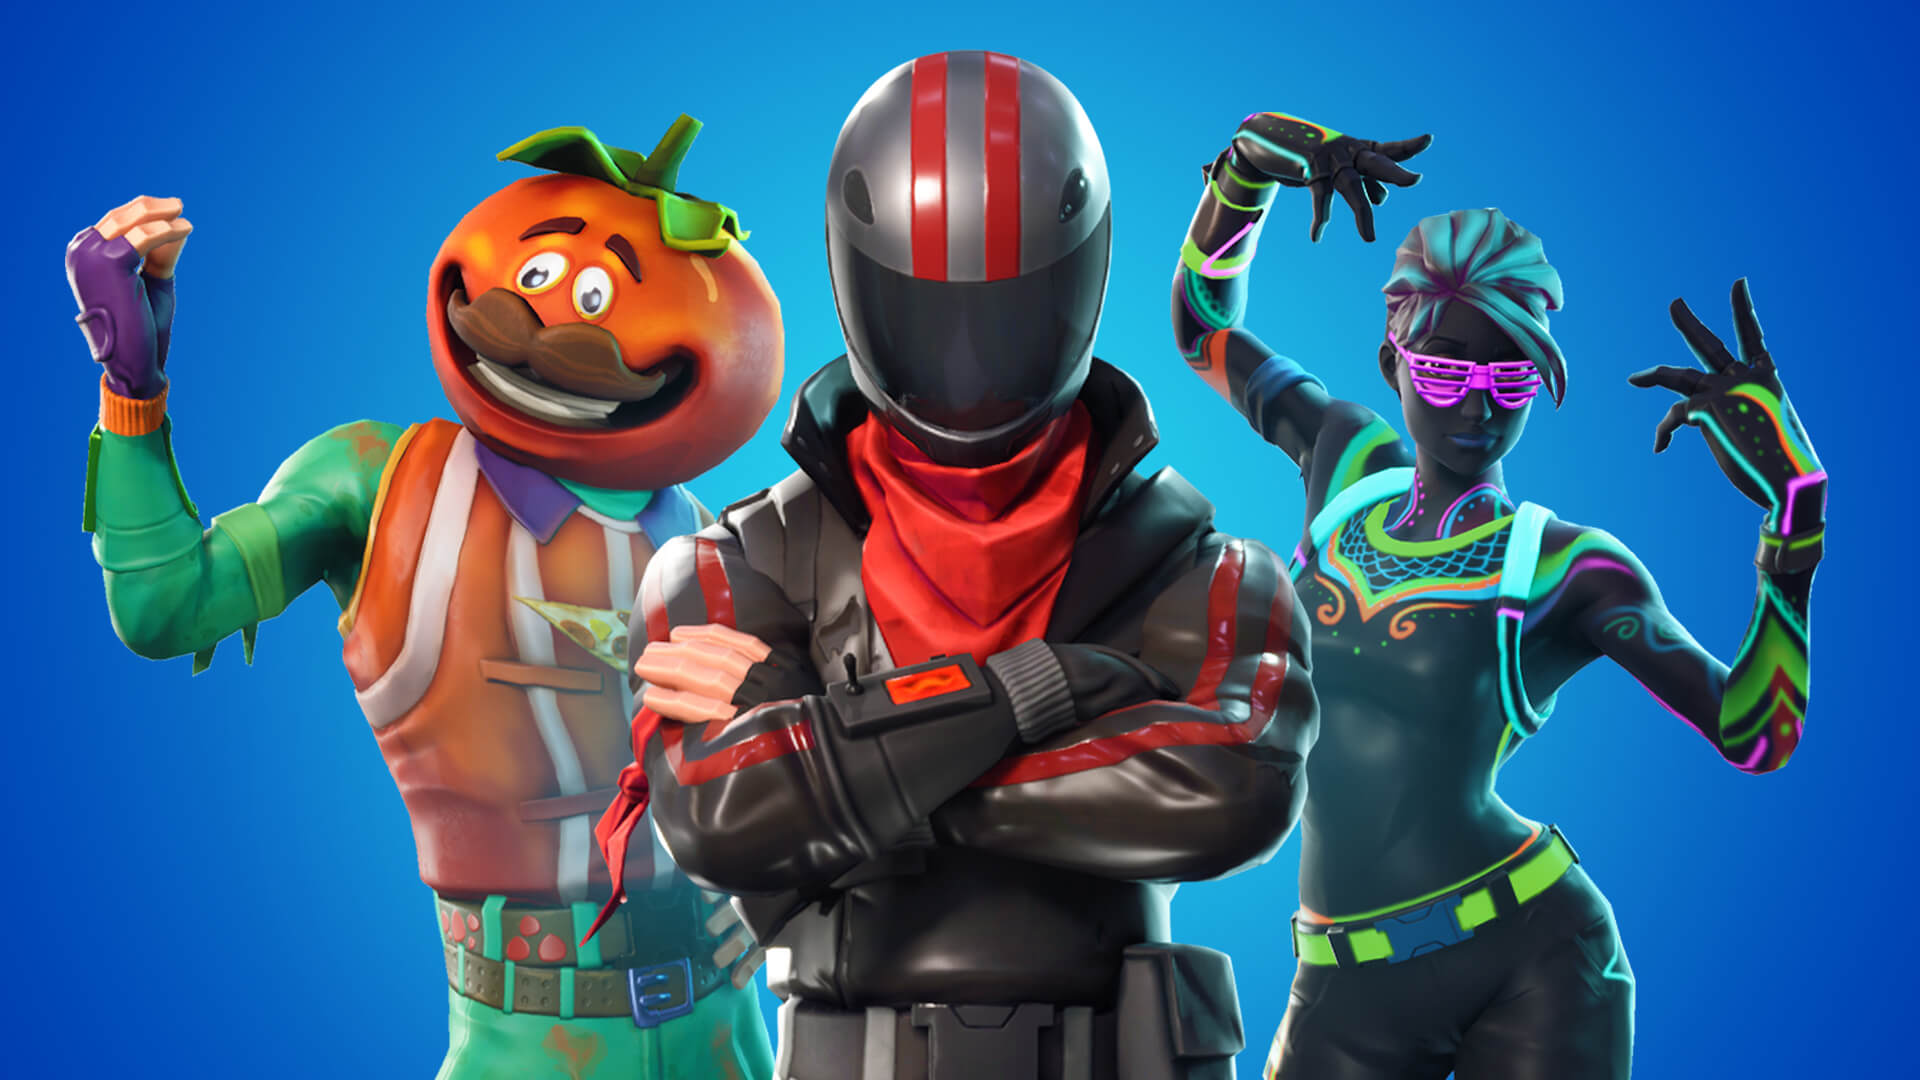 Three colorful characters from Fortnite pose in front of a striking blue background.